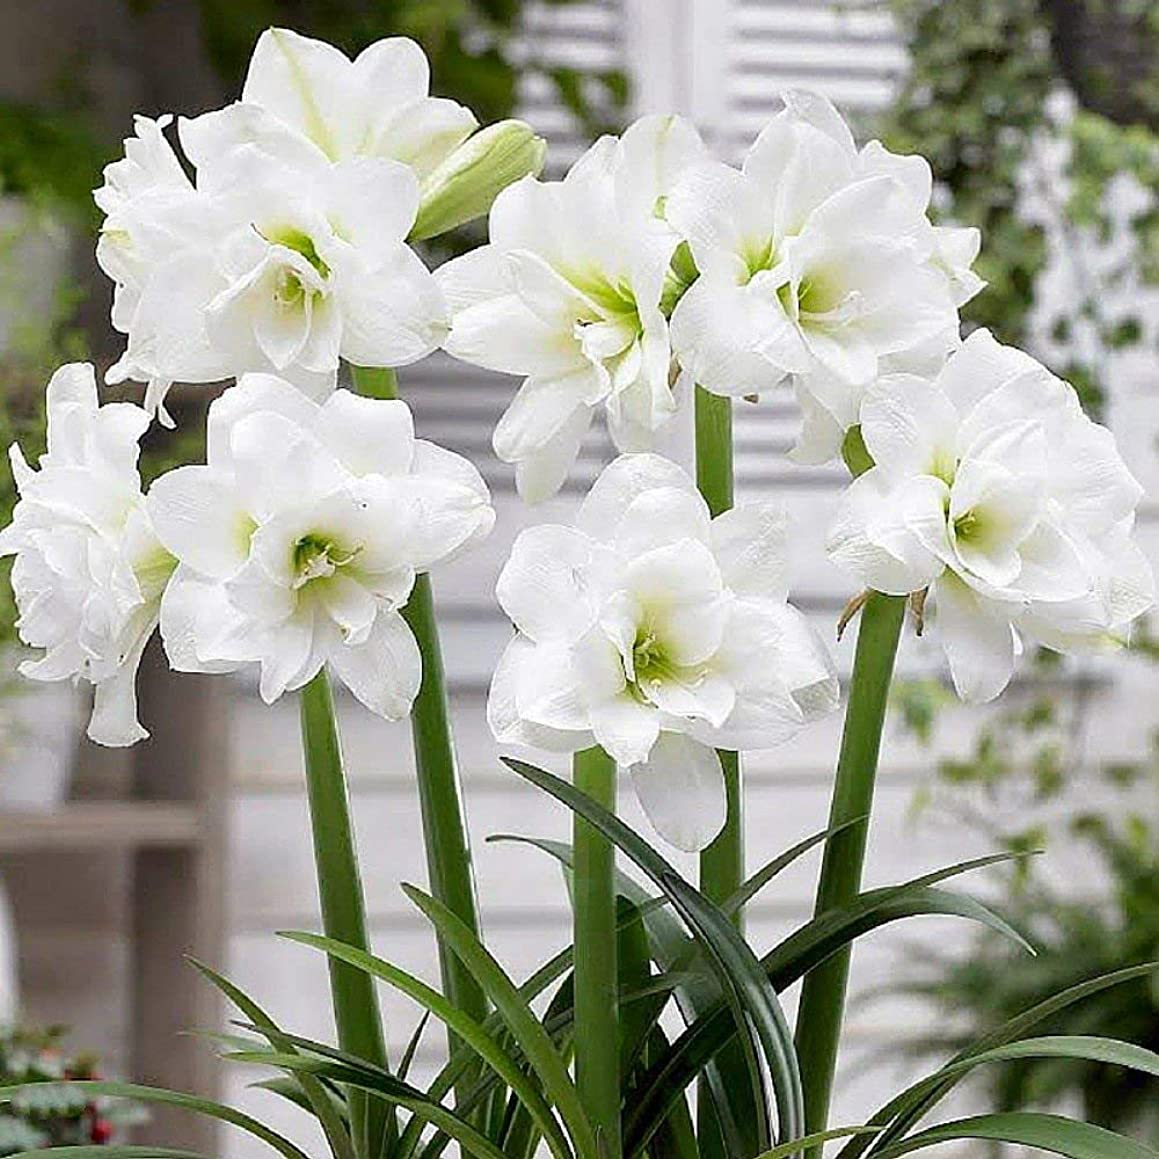 True Amaryllis Bulbs,Hippeastrum Bulbs Bonsai Flower Bulbs Amarilis Barbados Lily Bonsai Garden planta -2 Bulb 22/24cm